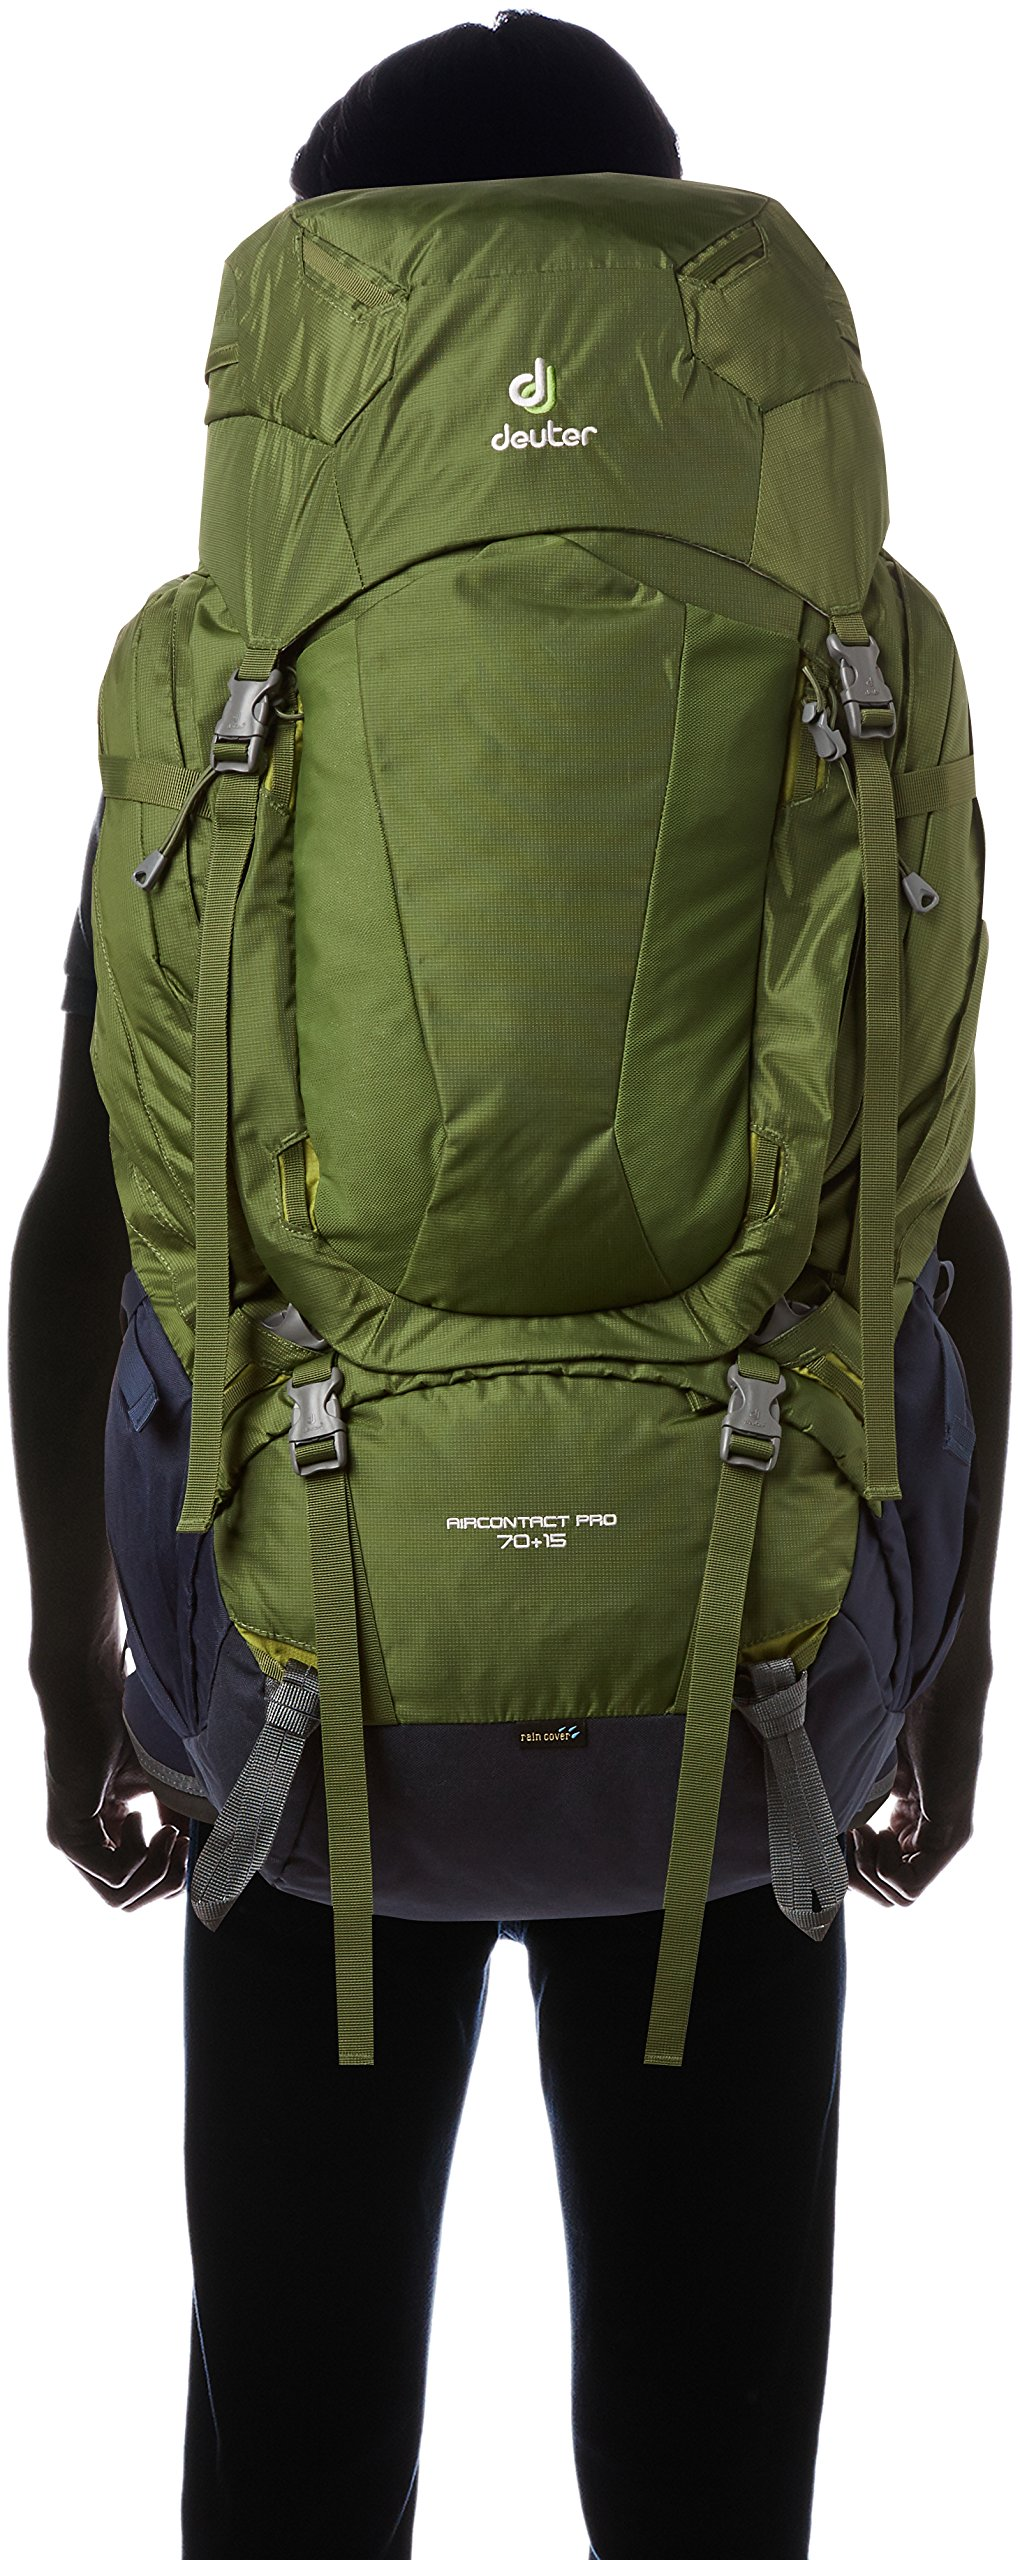 075cb165595 Deuter AirContact Pro 70 + 15 Backpack Unisex Pine-Navy